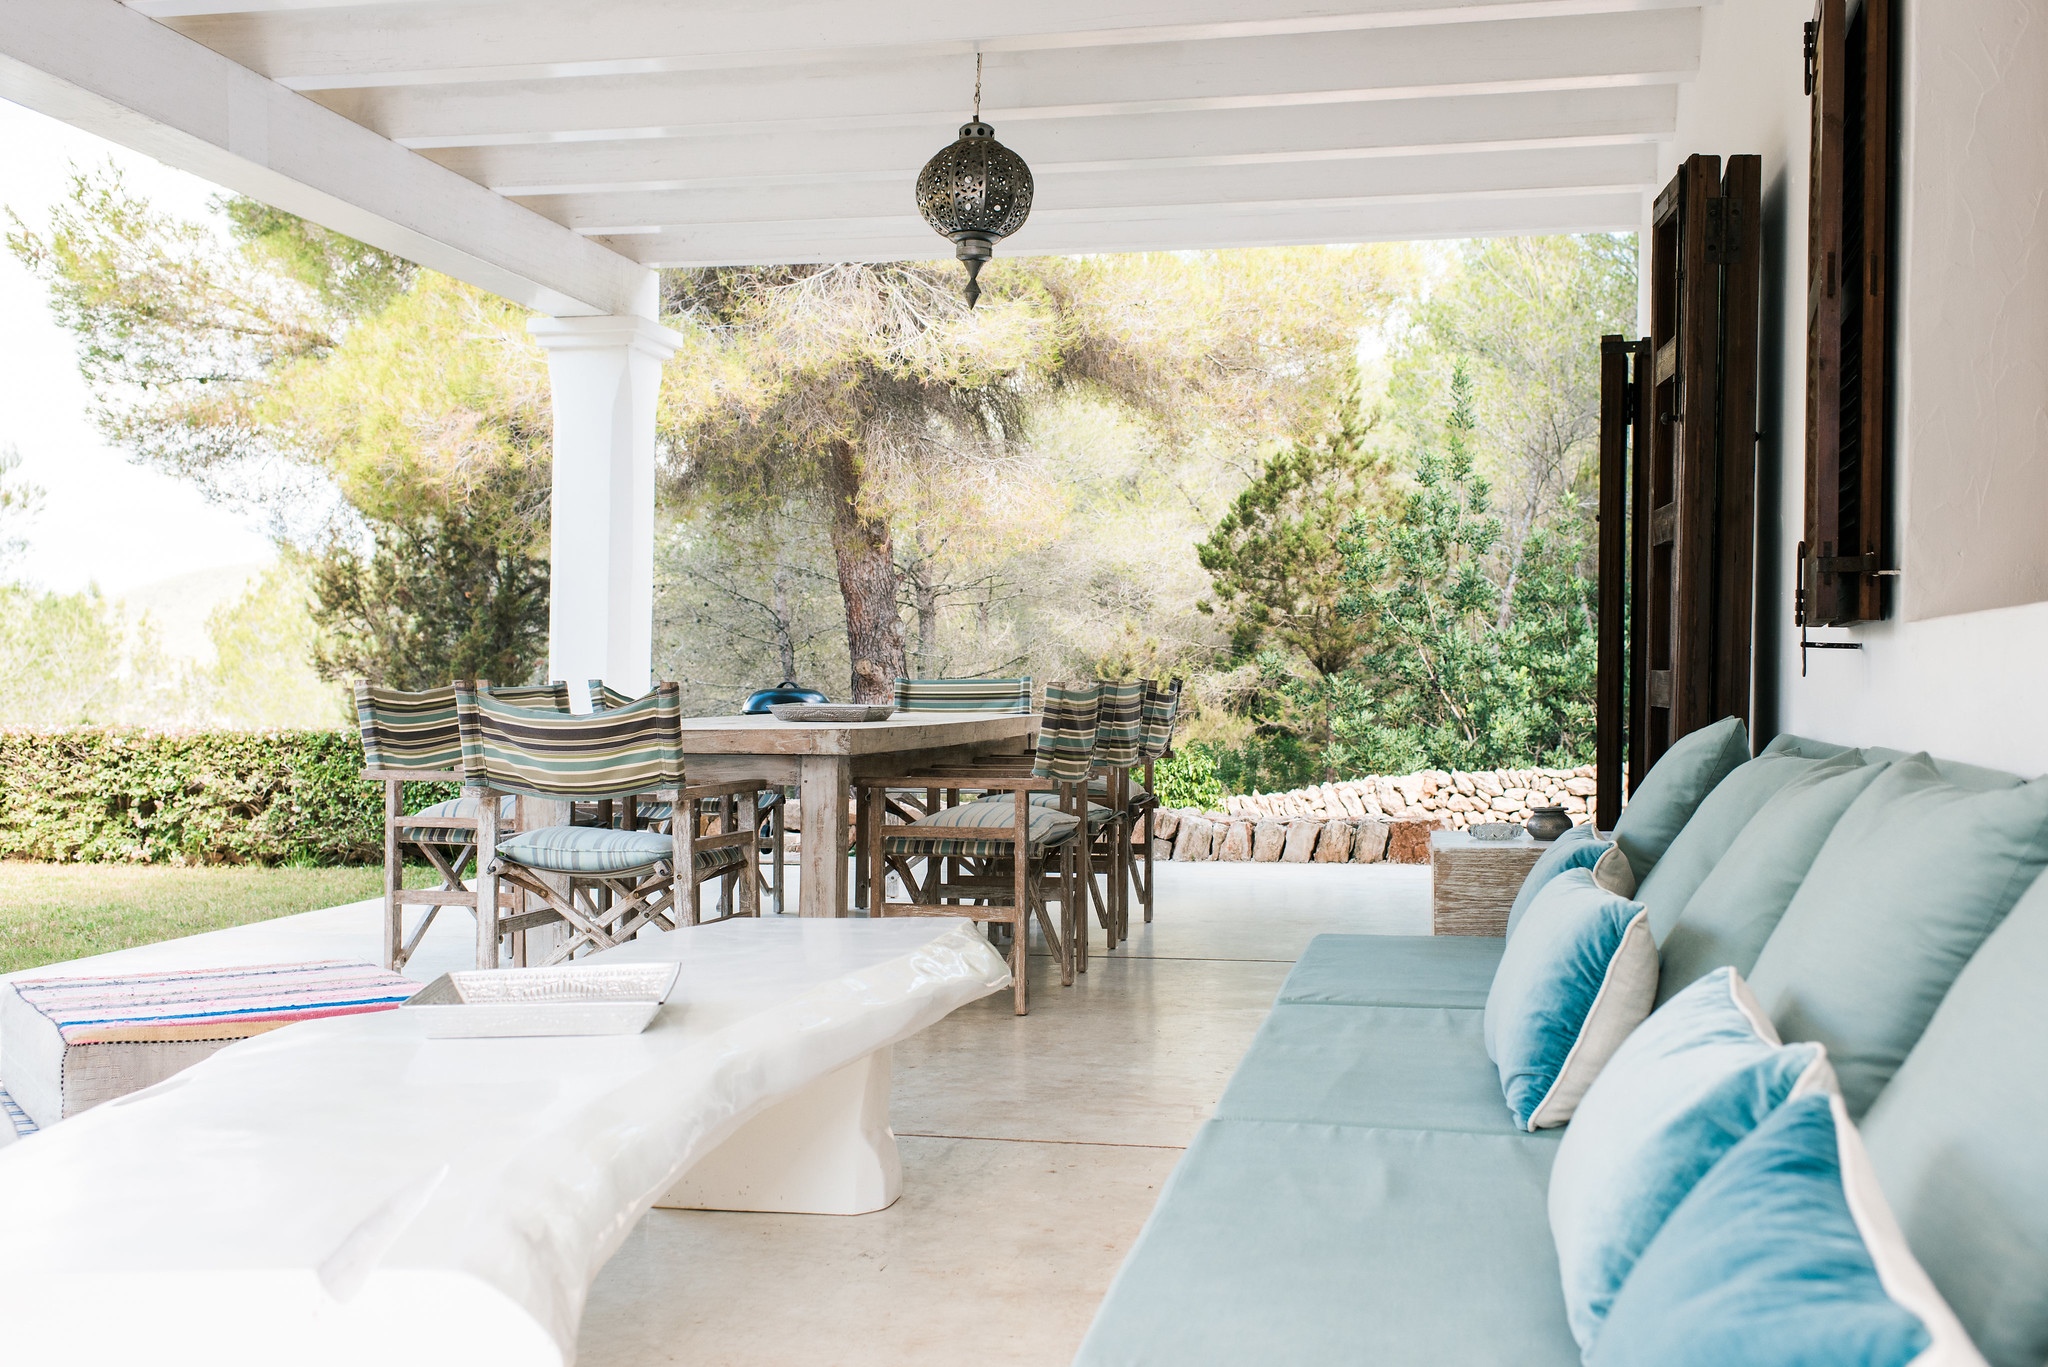 https://www.white-ibiza.com/wp-content/uploads/2020/06/white-ibiza-villas-casa-arabella-exterior-outside-dining2.jpg